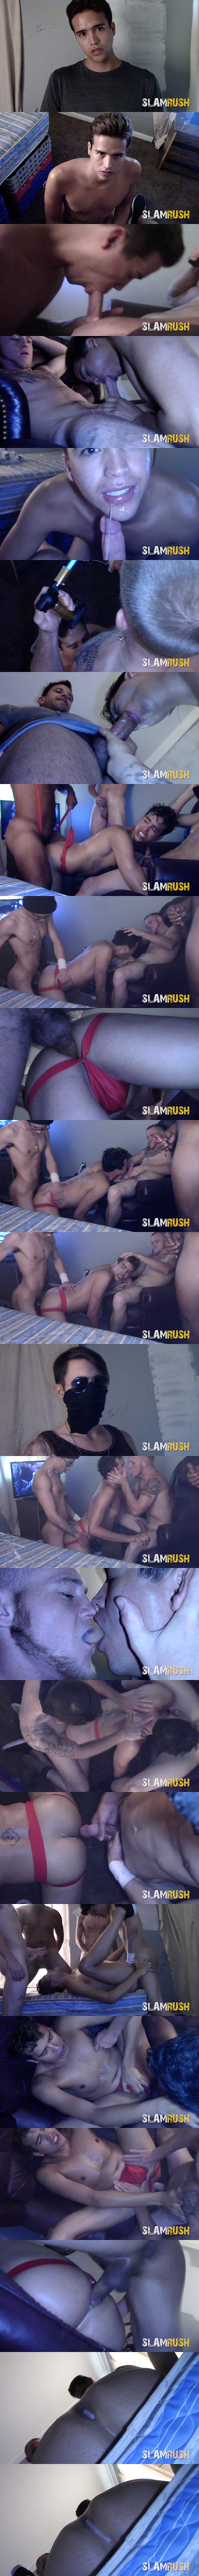 A cute young man gets barebacked and gangbanged by several street fuckers before he gets his mouth and ass filled with creamy loads in Lost Seed at Slamrush 01